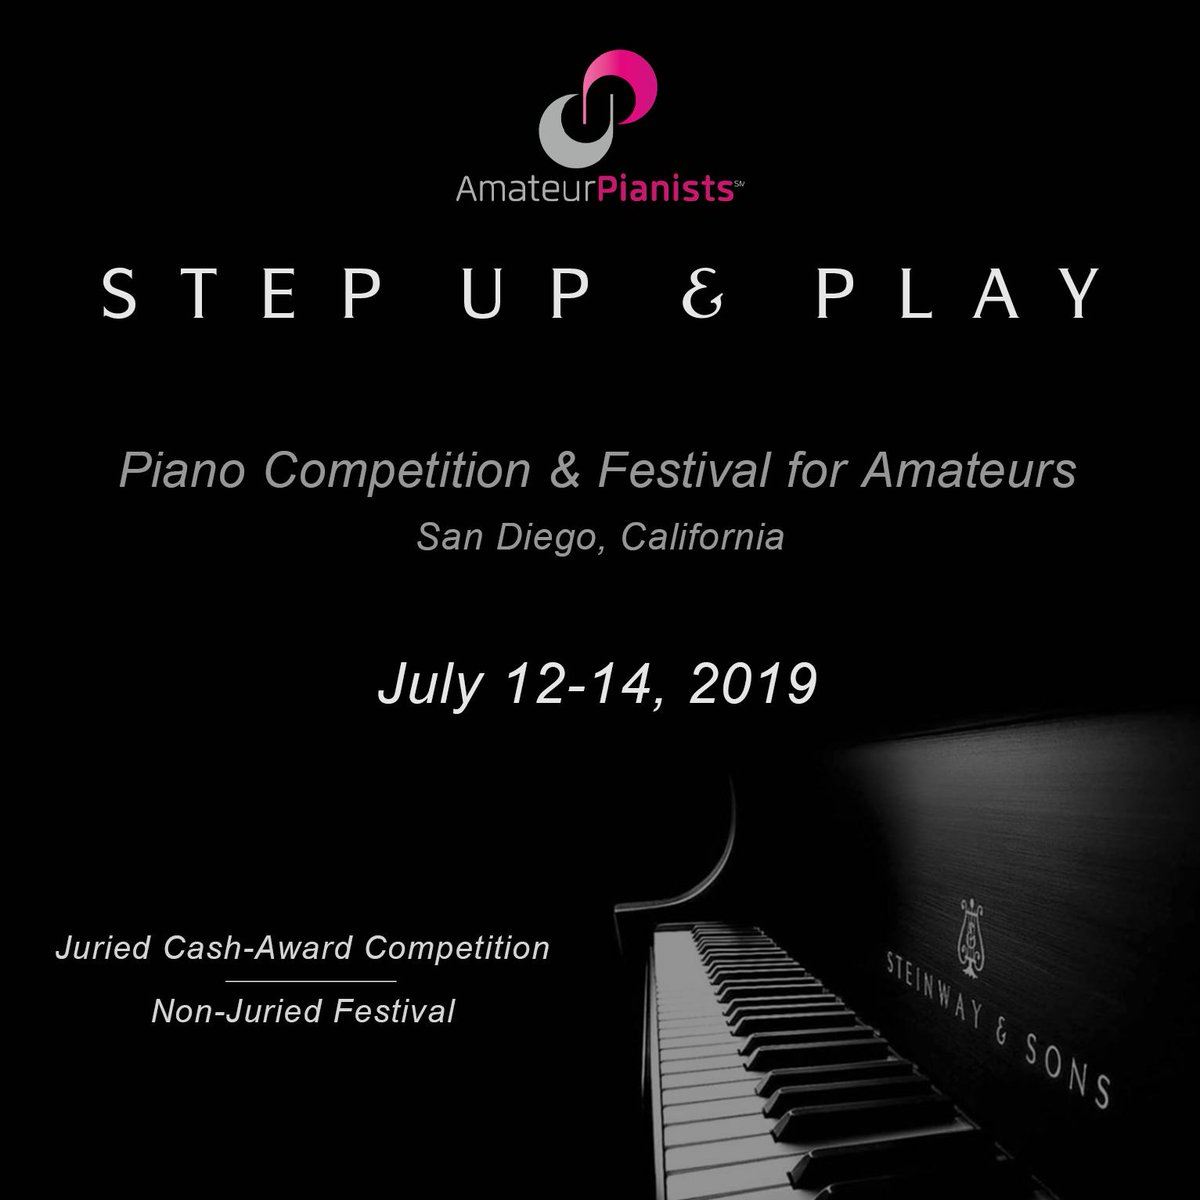 pianocompetition tagged Tweets and Downloader | Twipu